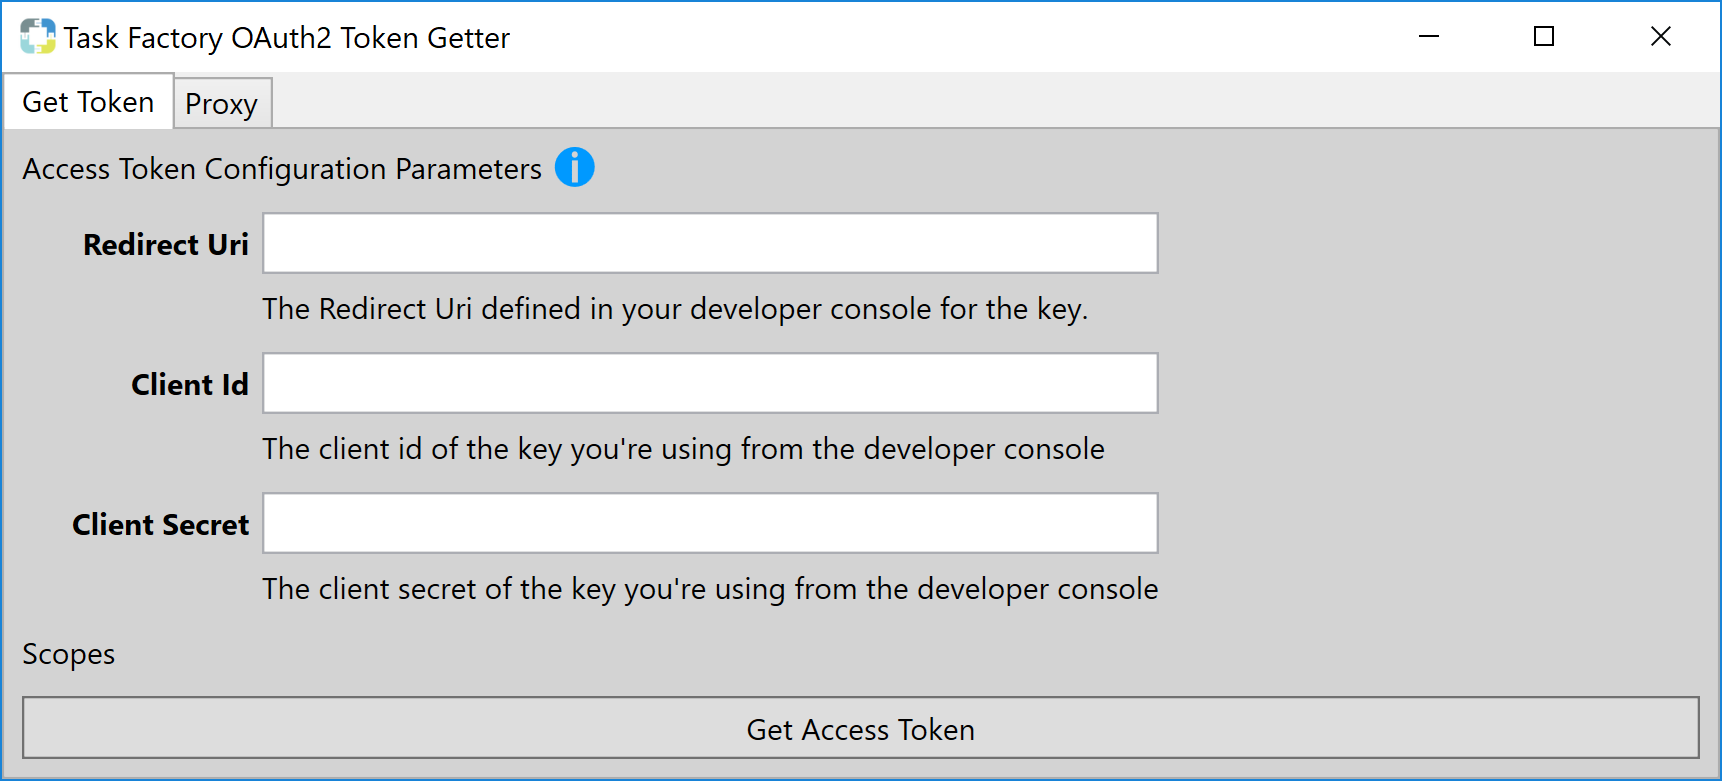 Task Factory OAuth2 Token Getter Get Access Token